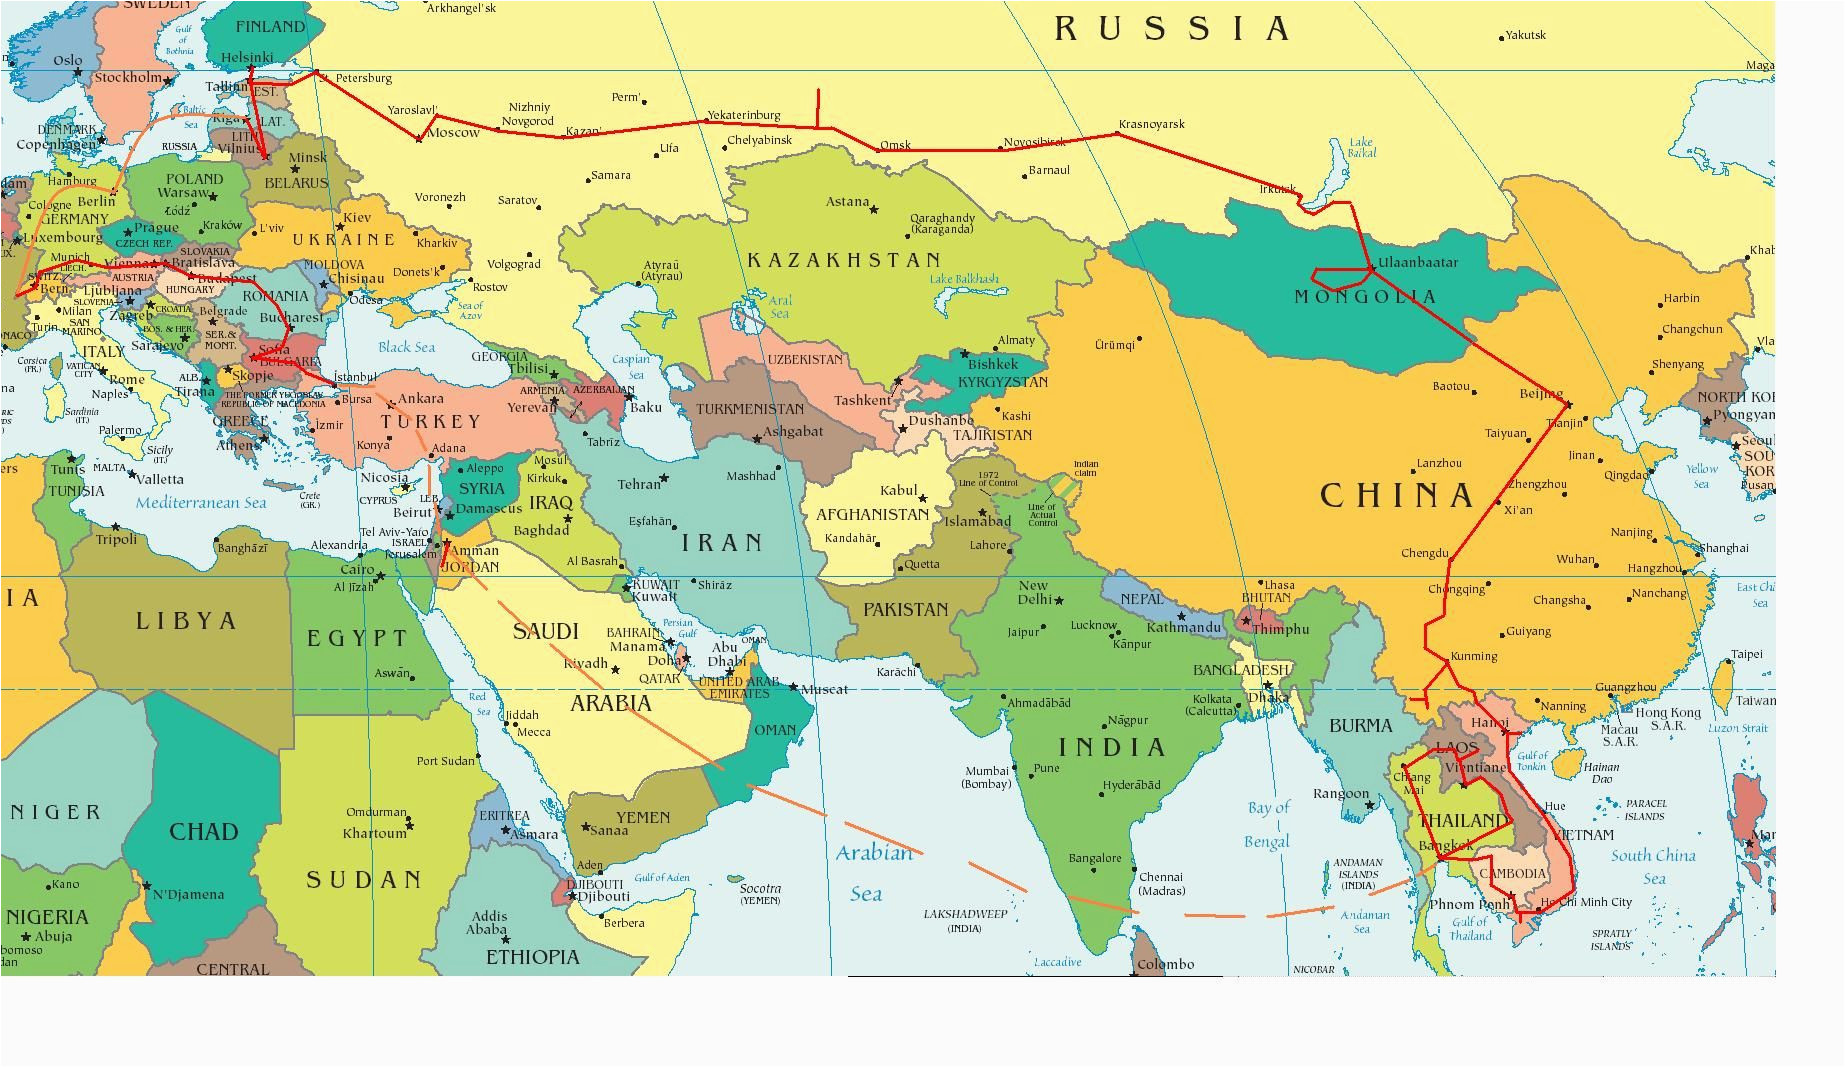 Map Of Georgia In Asia.Map Of Georgia And Russia Eastern Europe And Middle East Partial